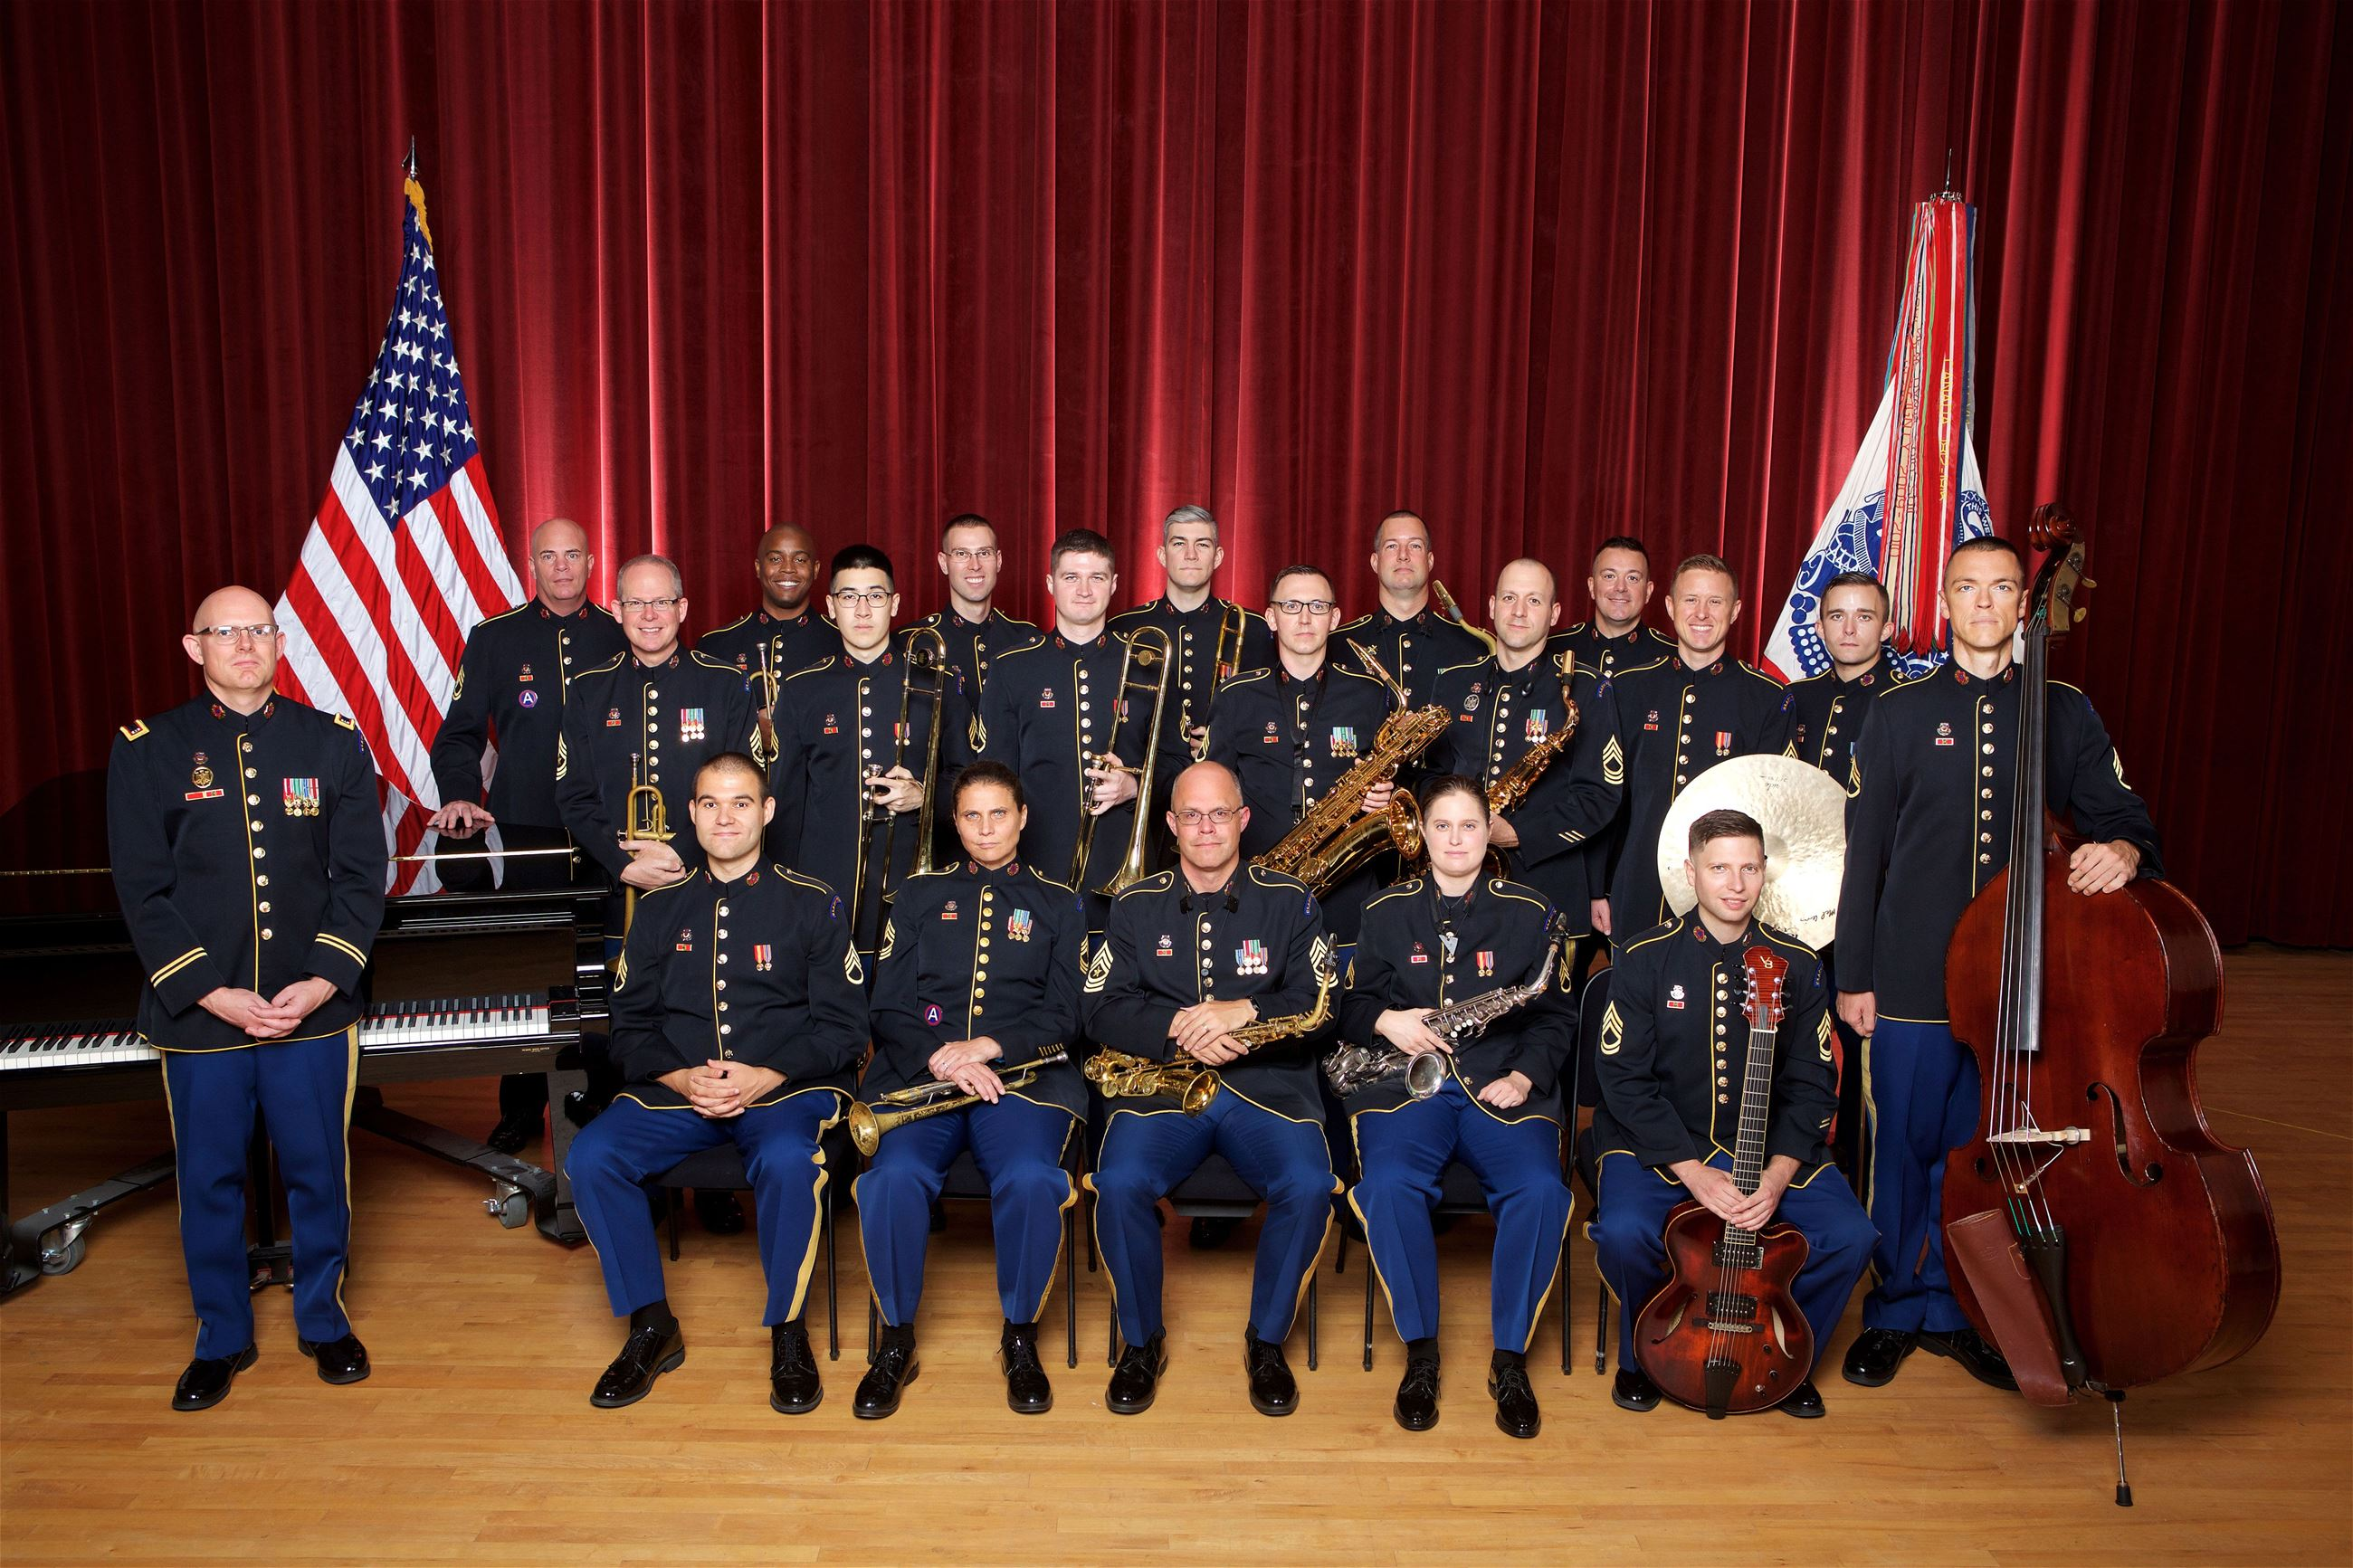 US Army Field Band Jazz Ambassadors Group Photo